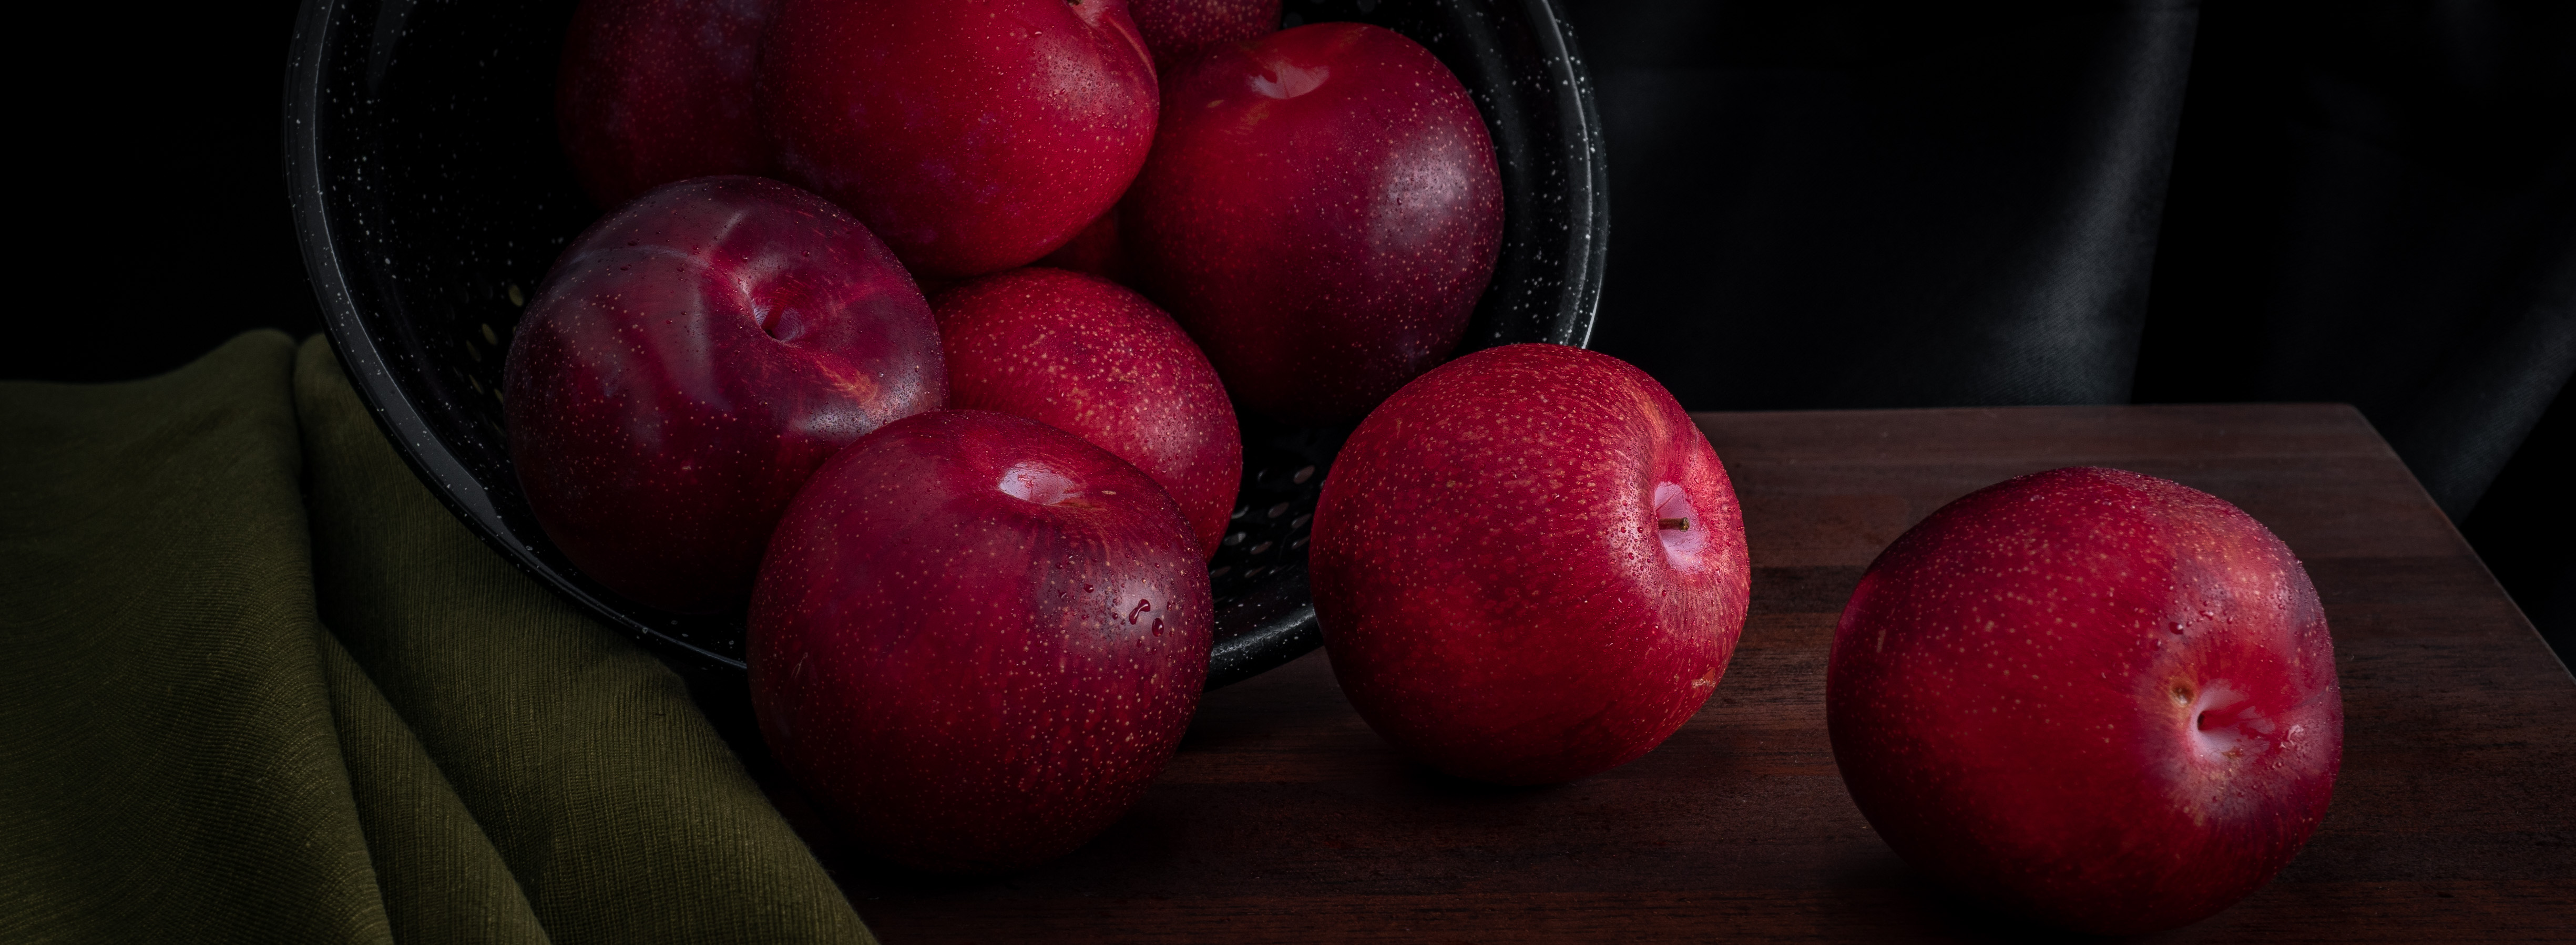 Still Life with Red Plums